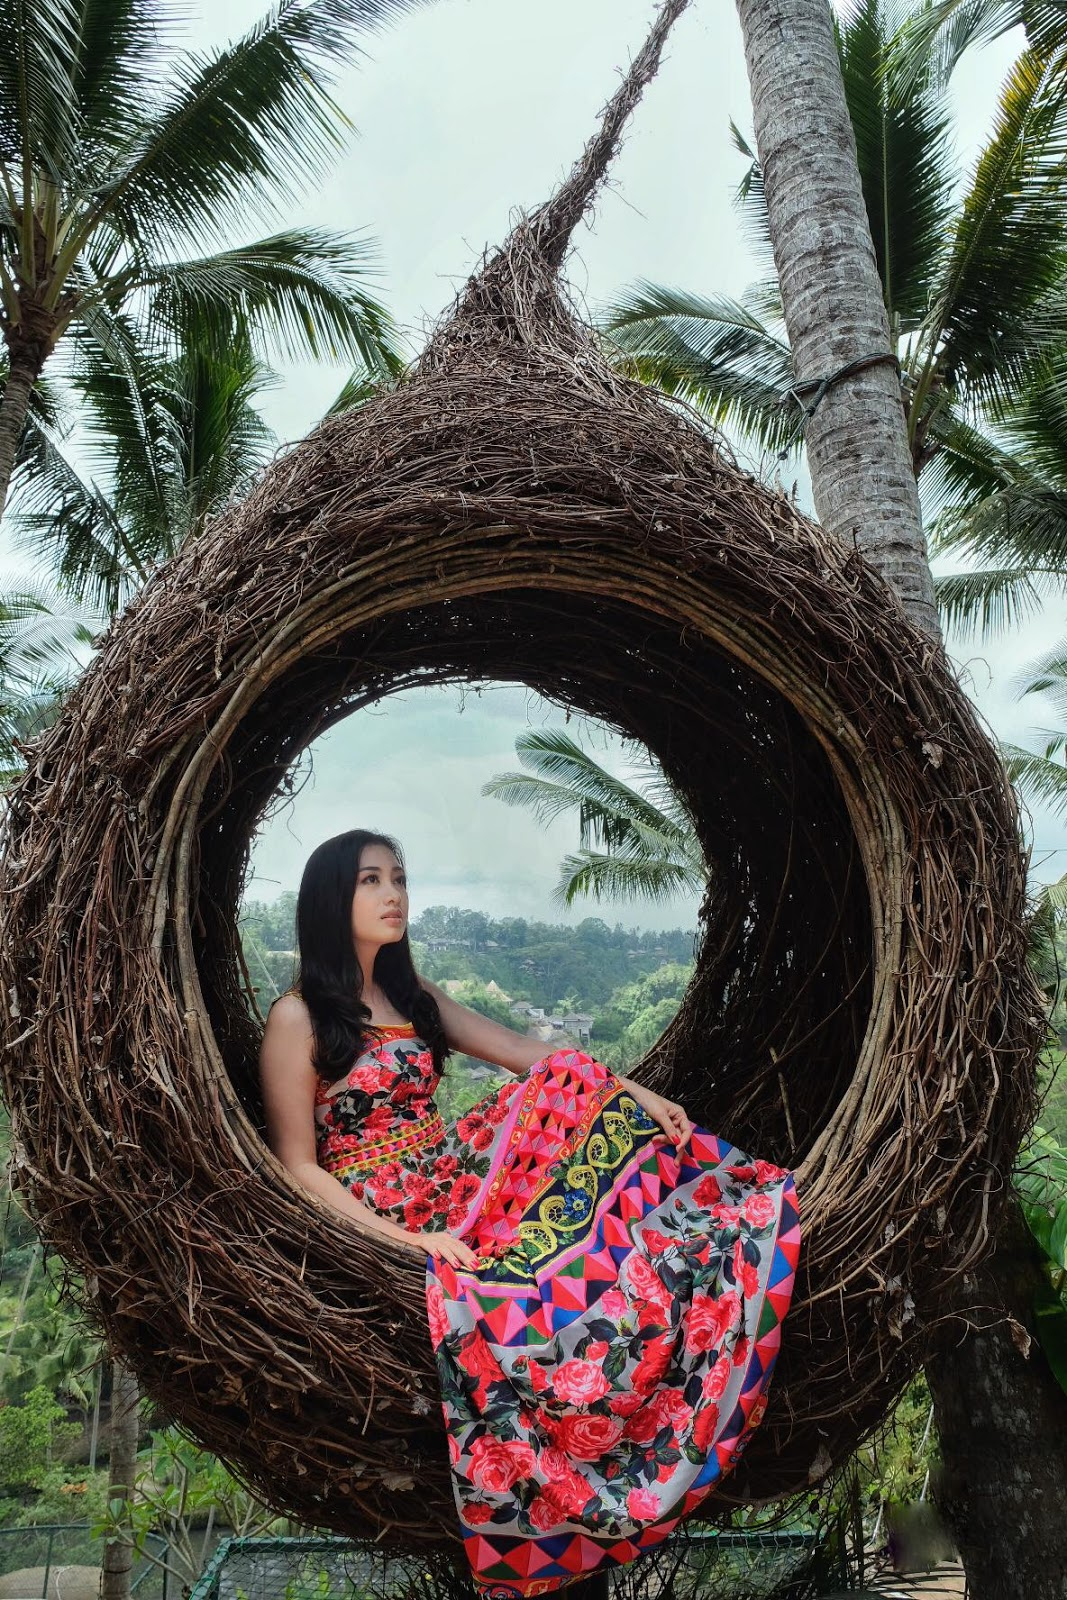 Yu Thandar Tin Fashion Snaps in Bali, Indonesia